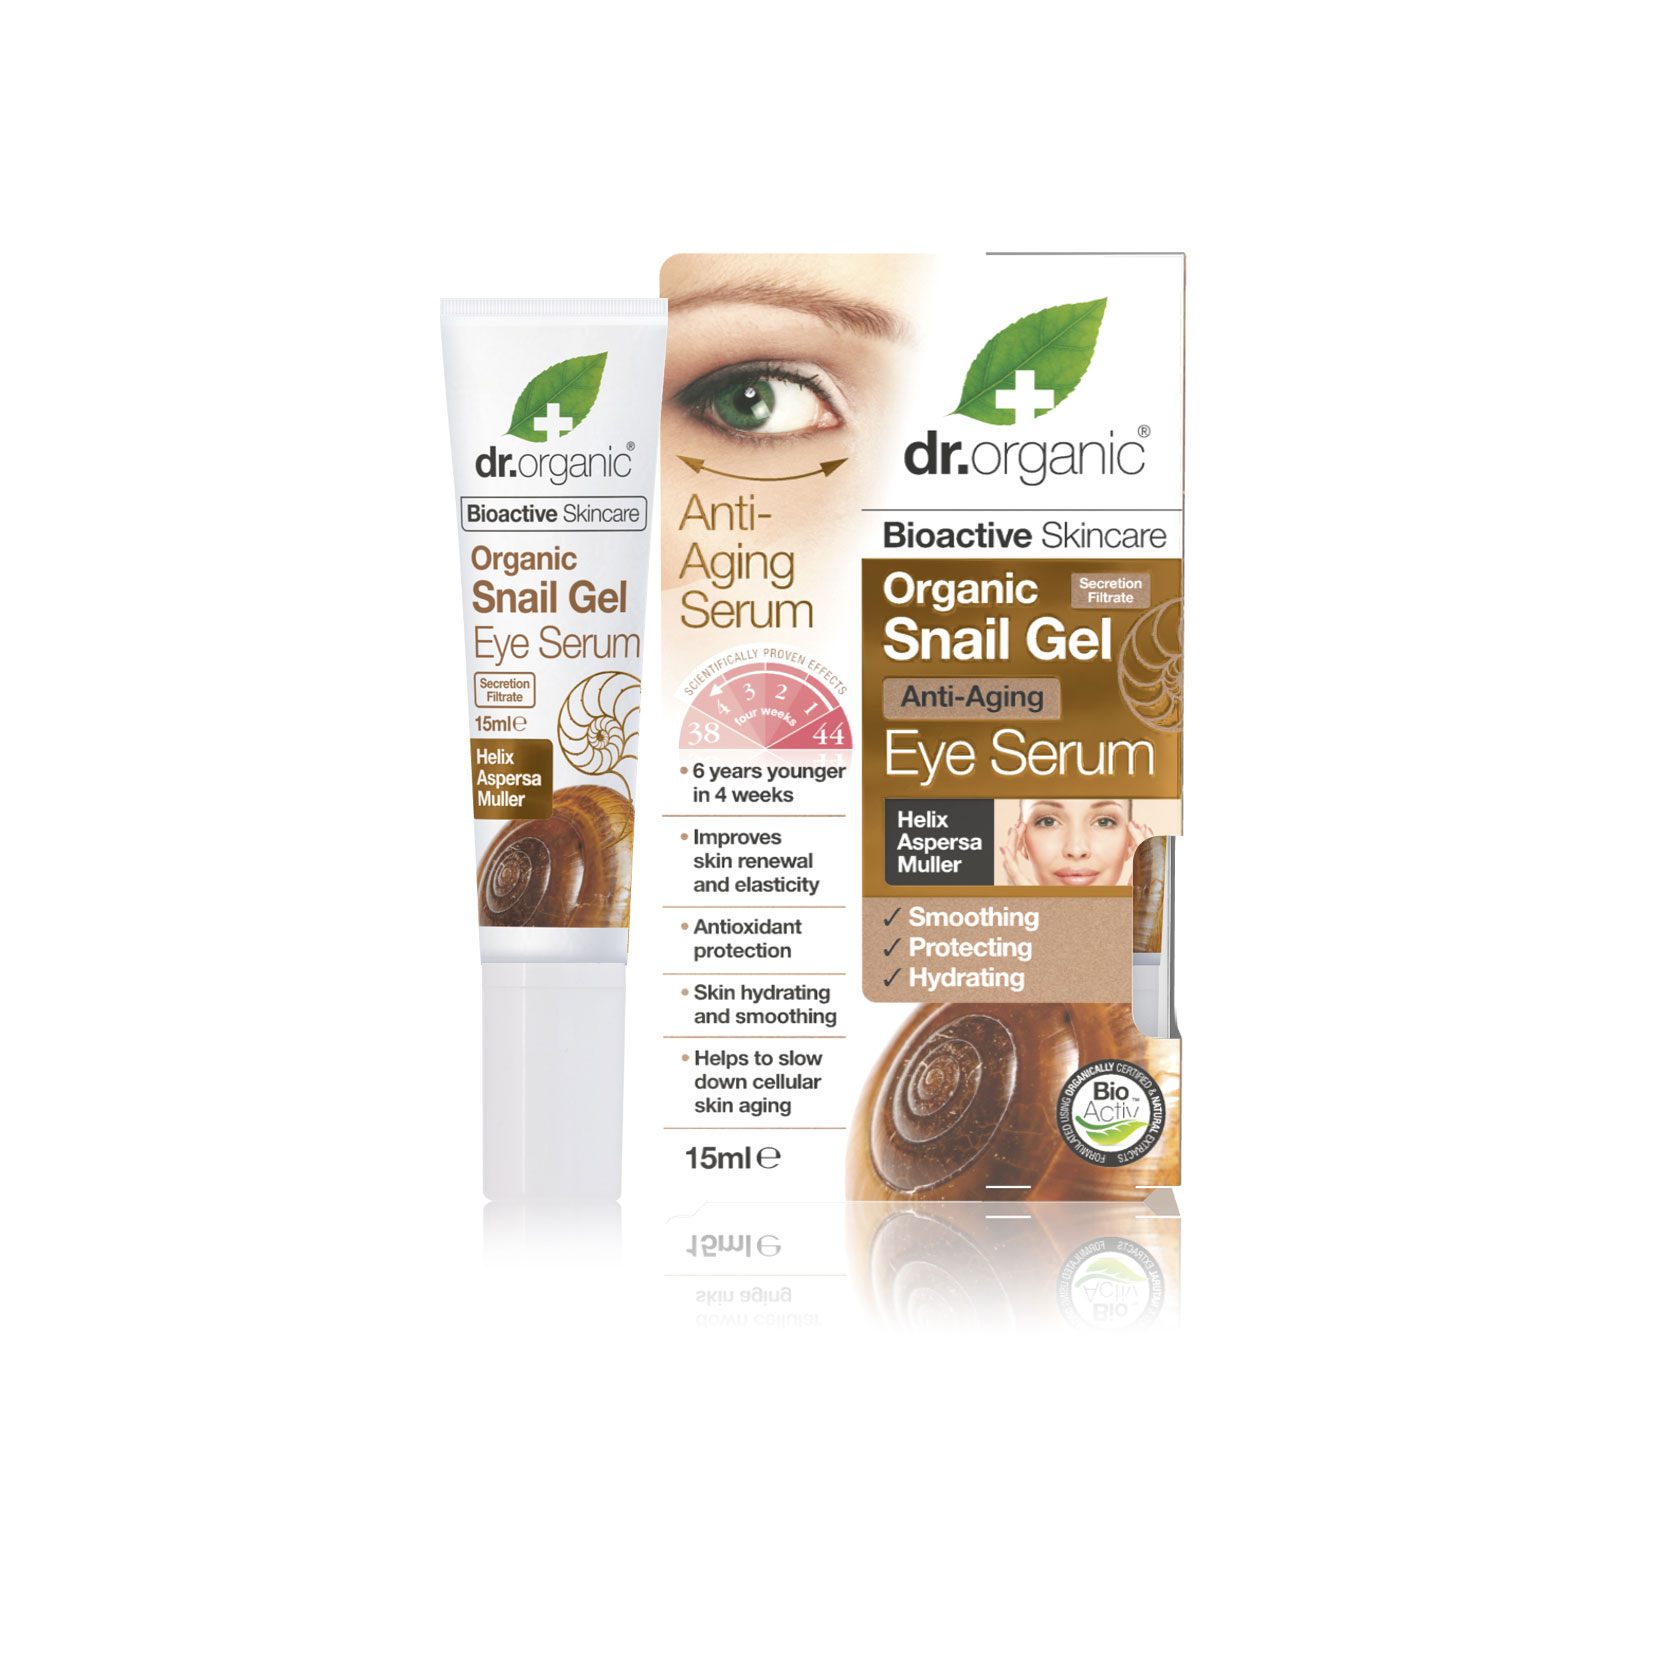 snail_gel_eye_serum_1.jpg